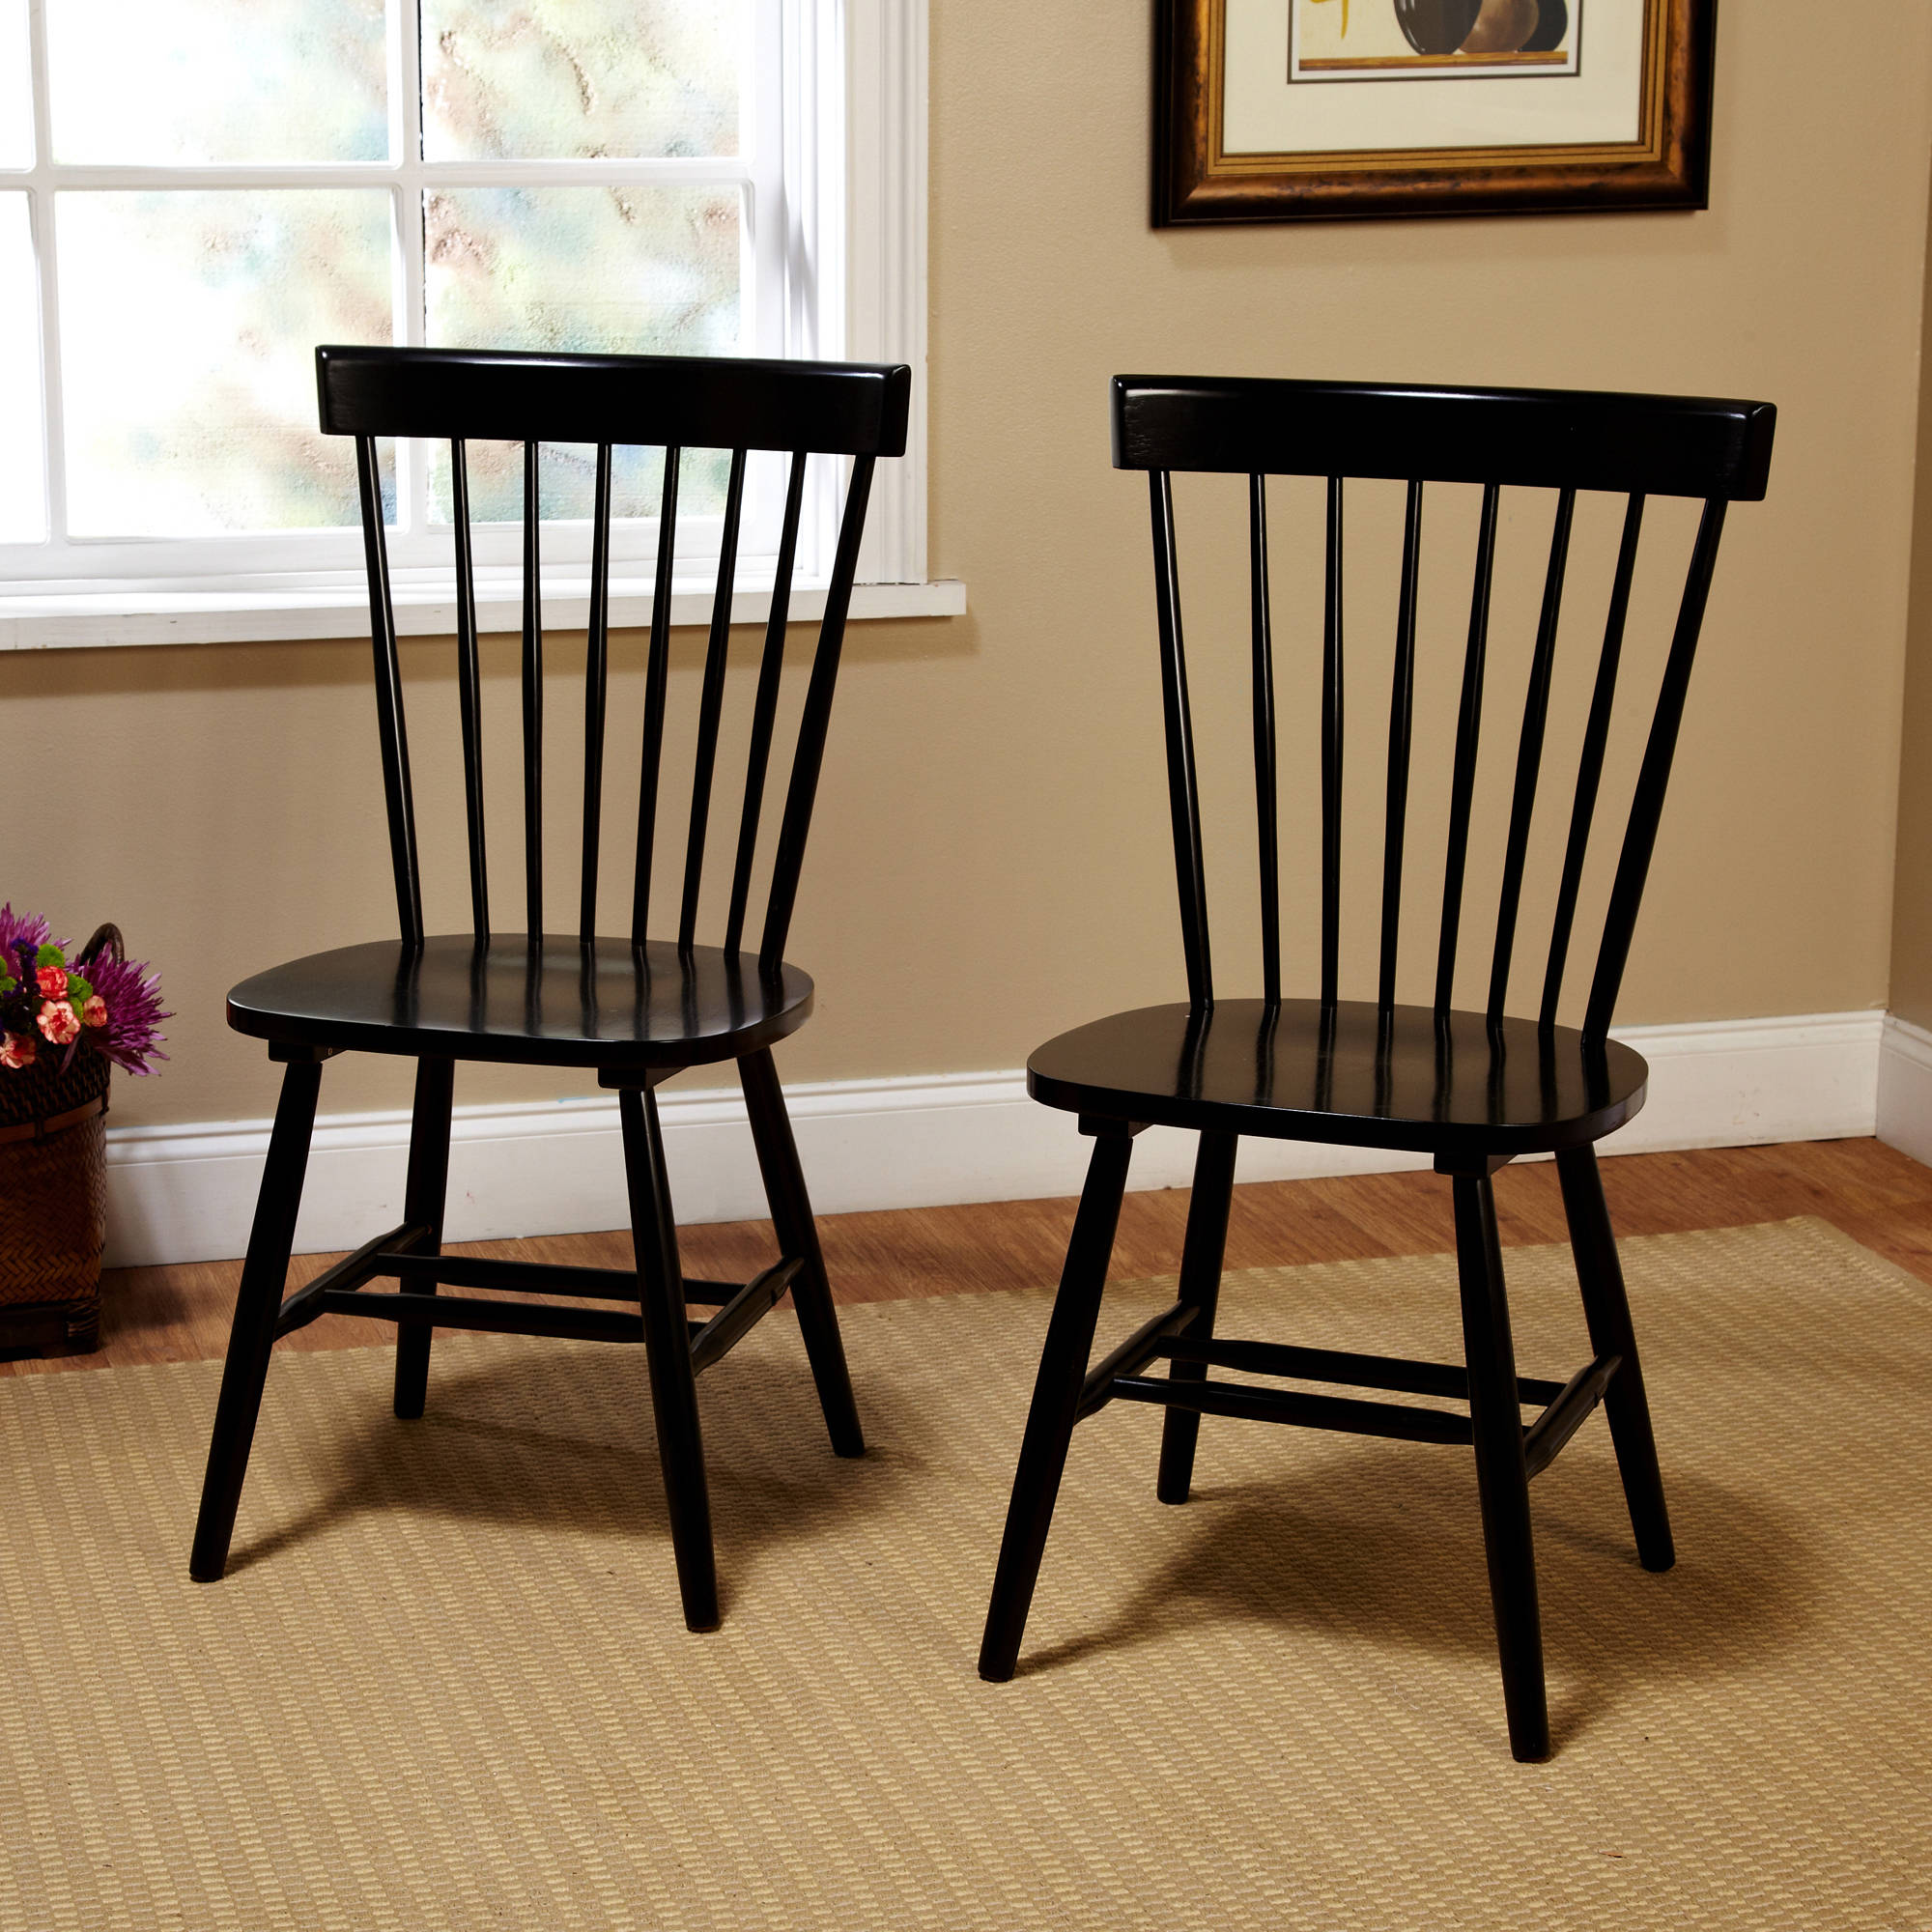 Venice Chair, Set of 2, Multiple Colors